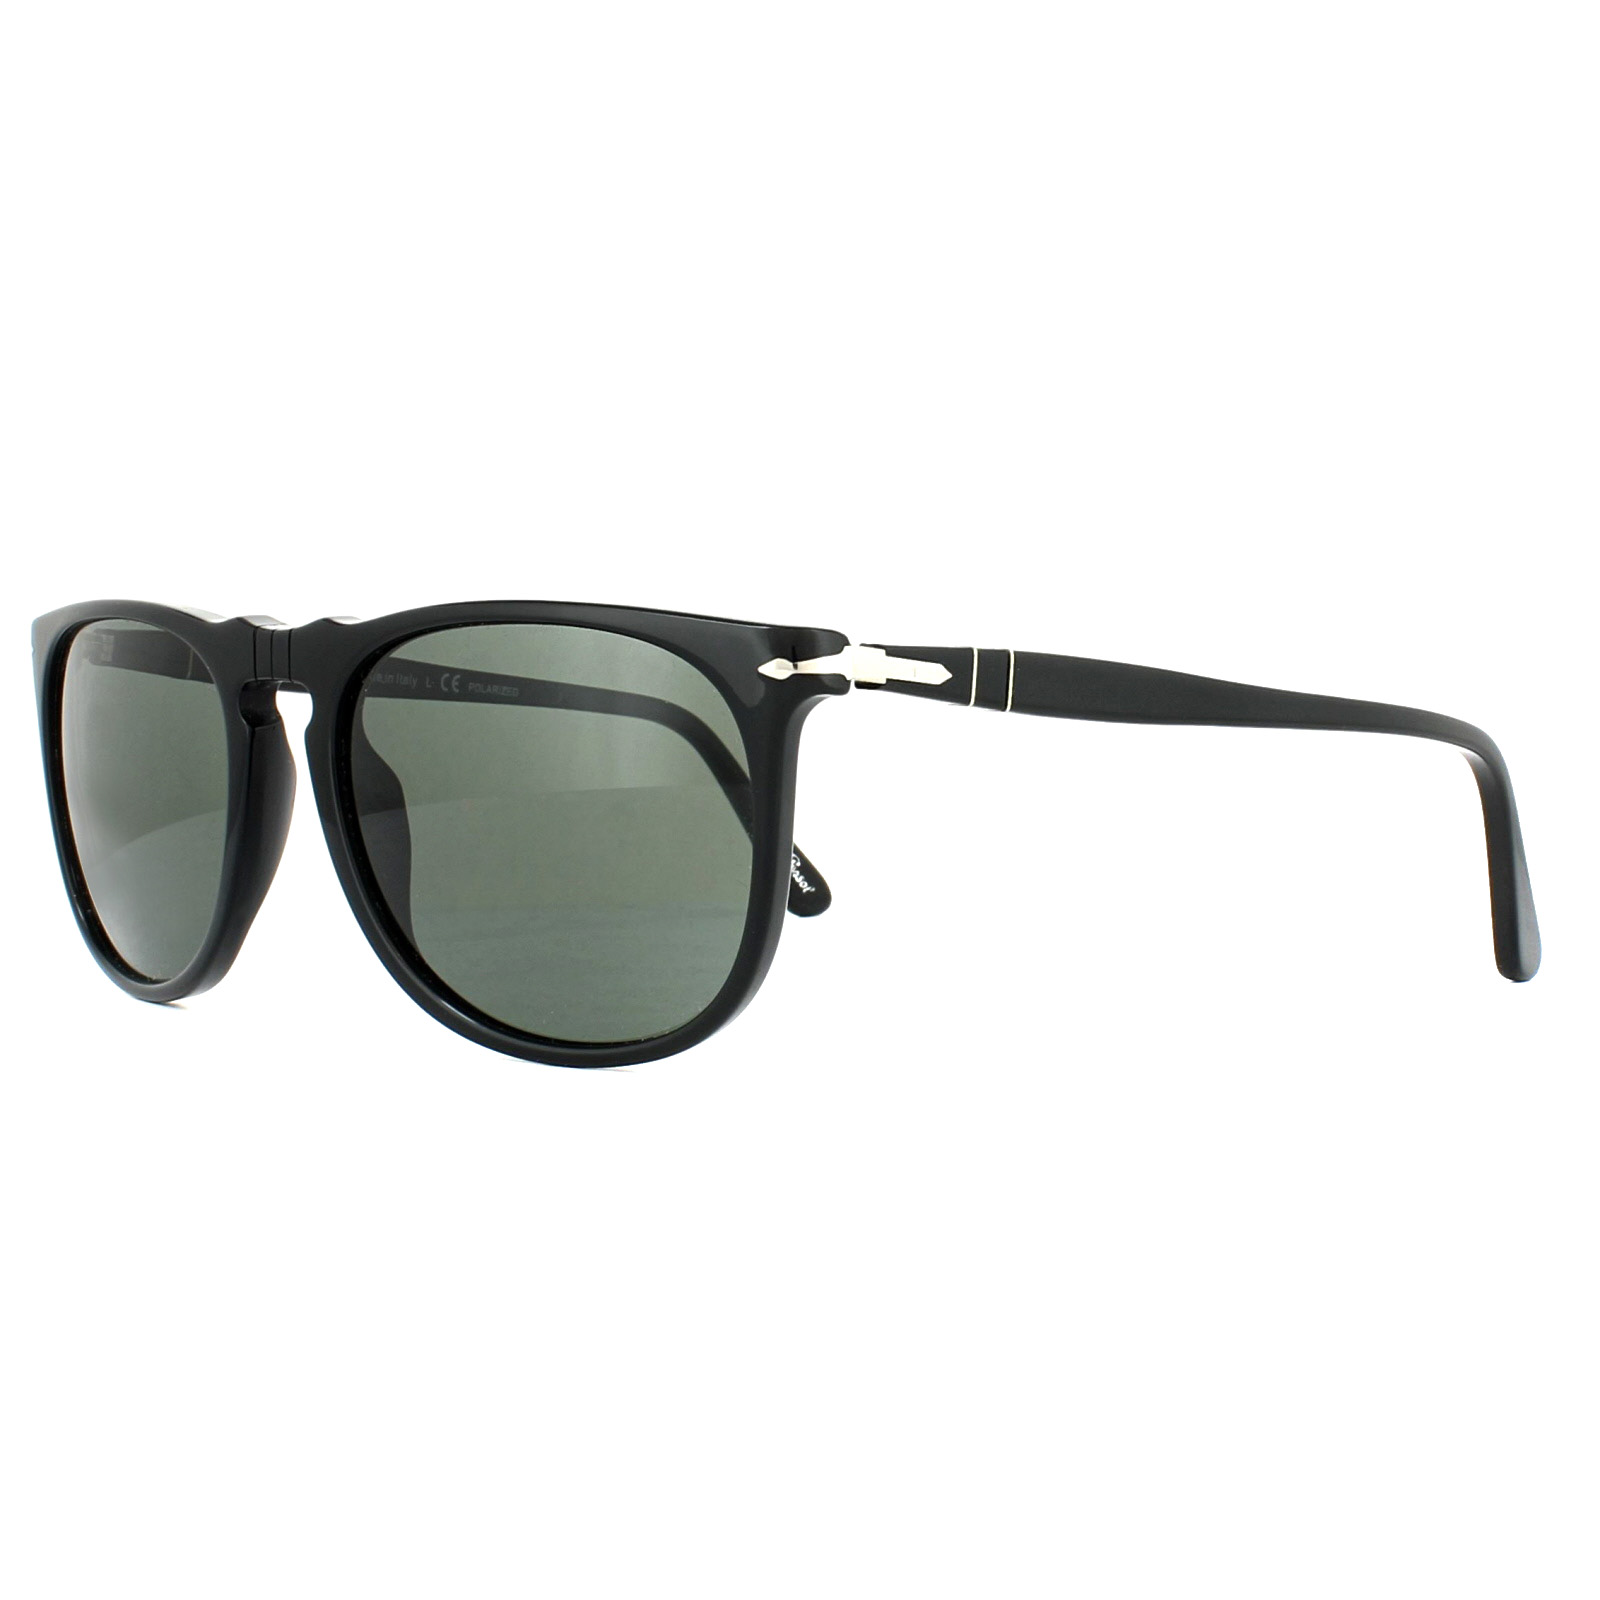 515360456787e Persol Sunglasses 3113S 95 58 Black Green Polarized 8053672419887